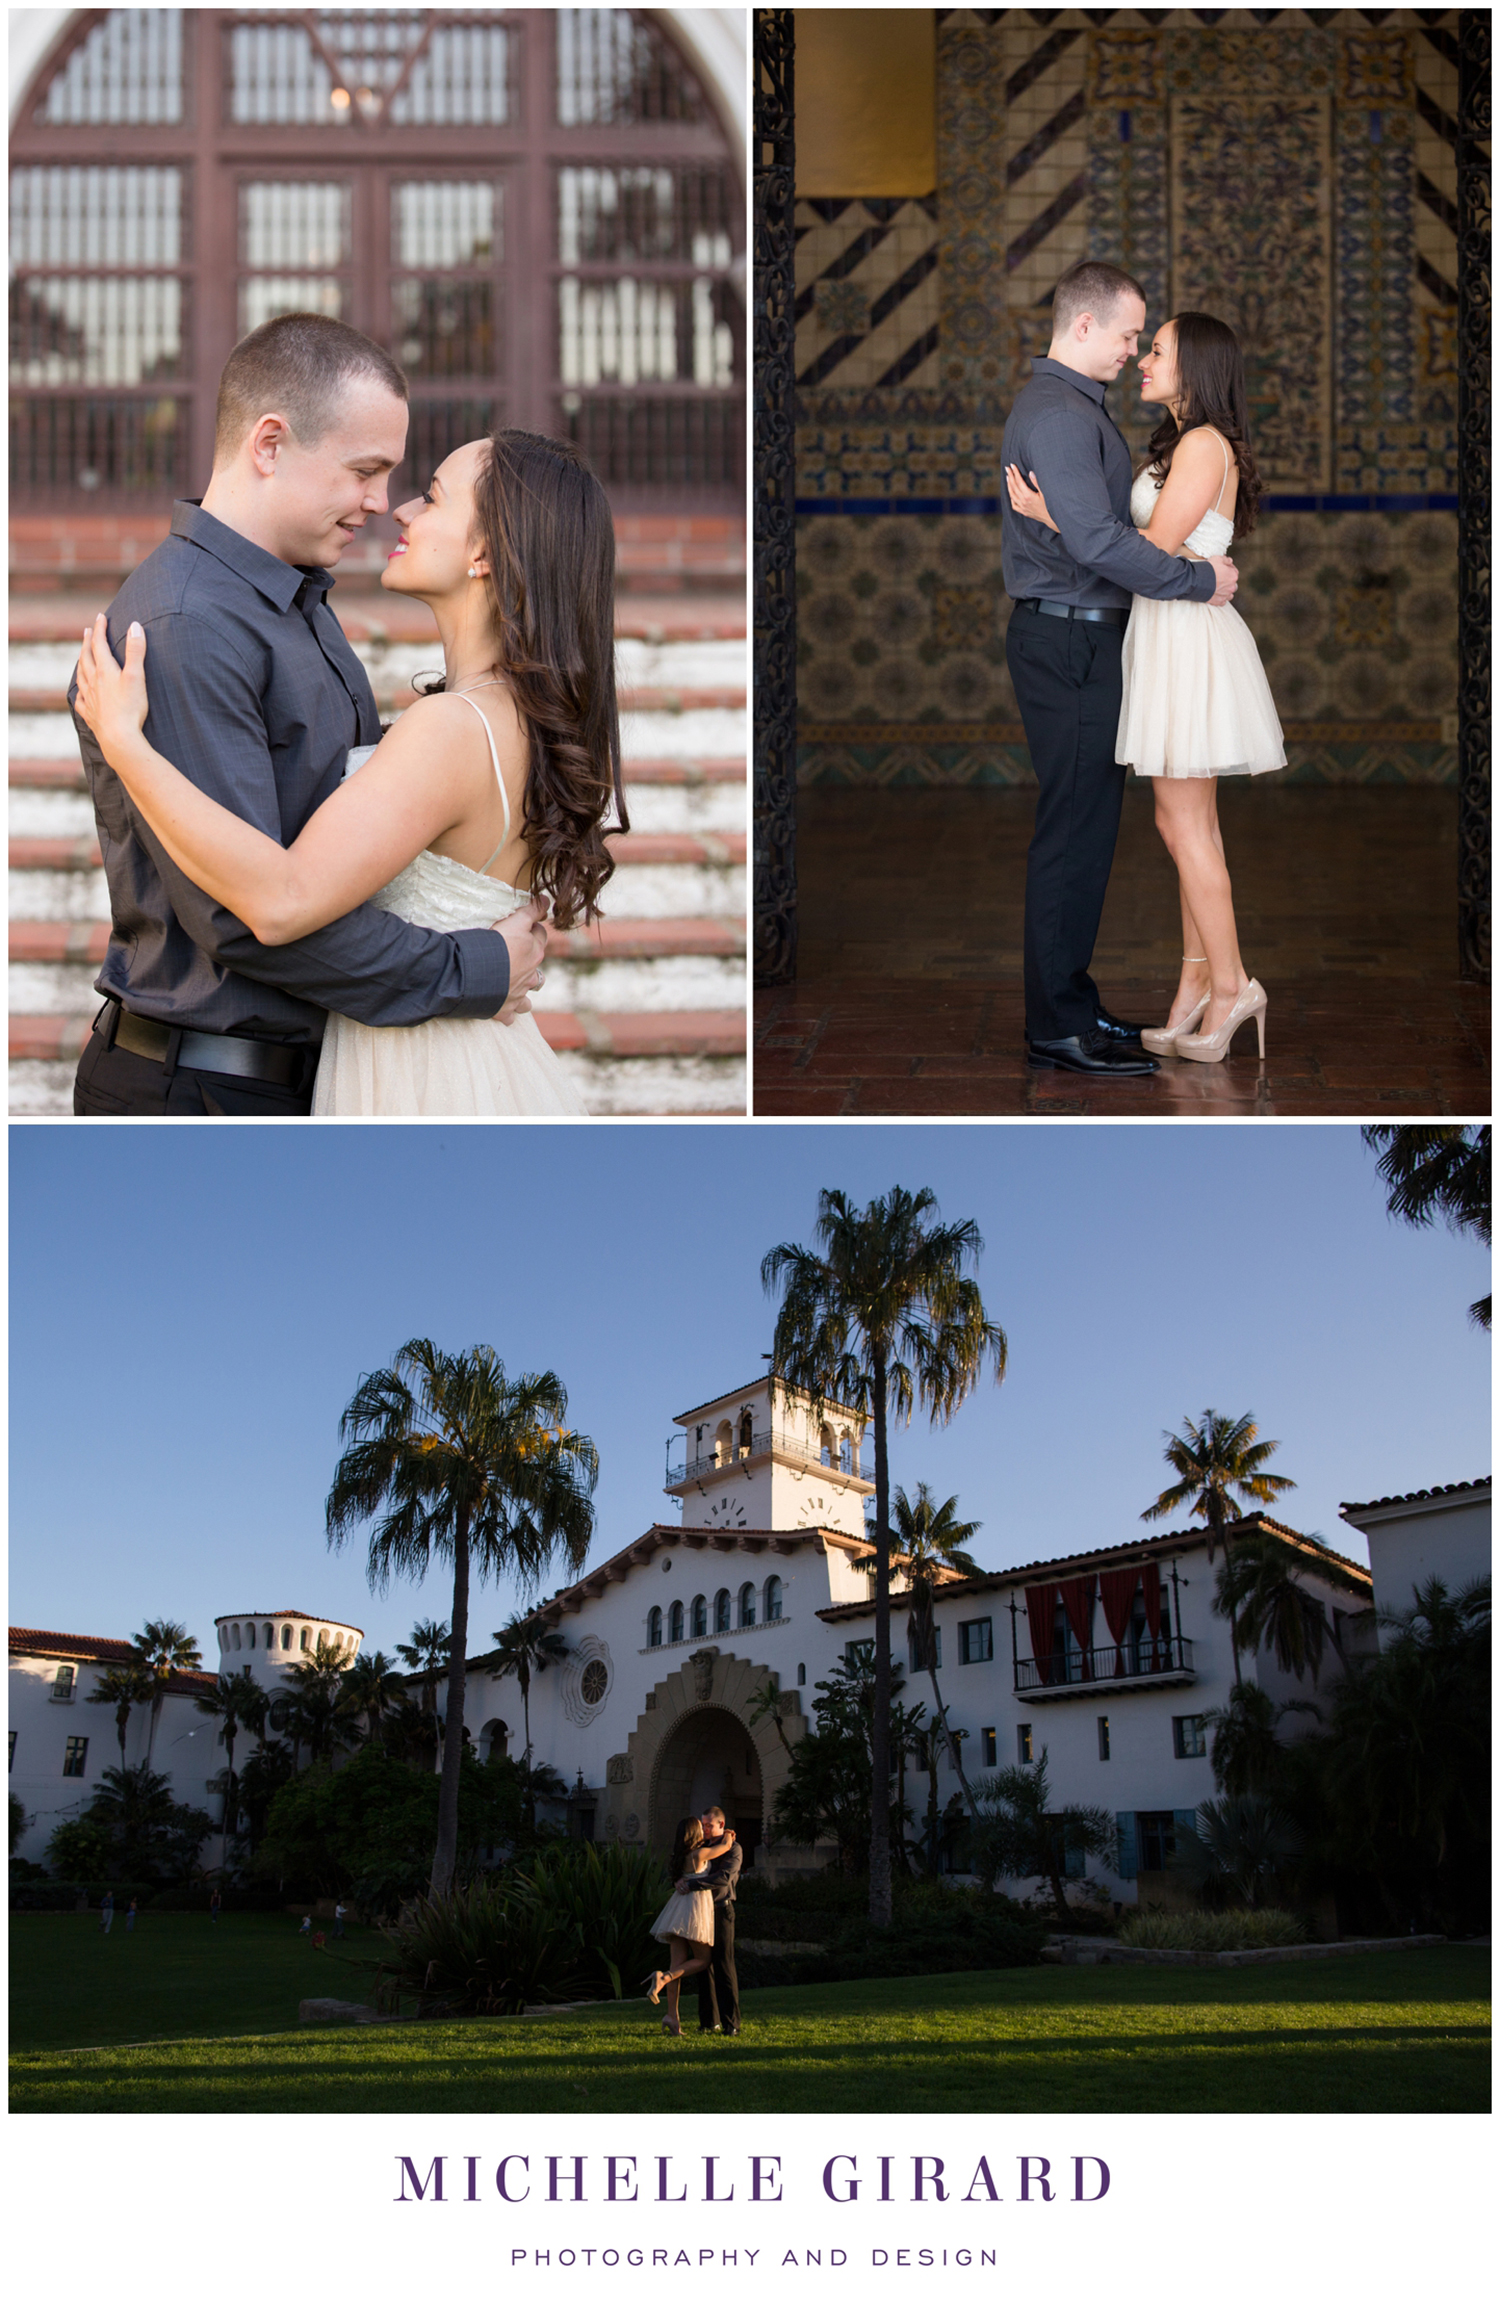 santa-barbara-courthouse-elopement-engagement-michelle-girard-photography-04.jpg